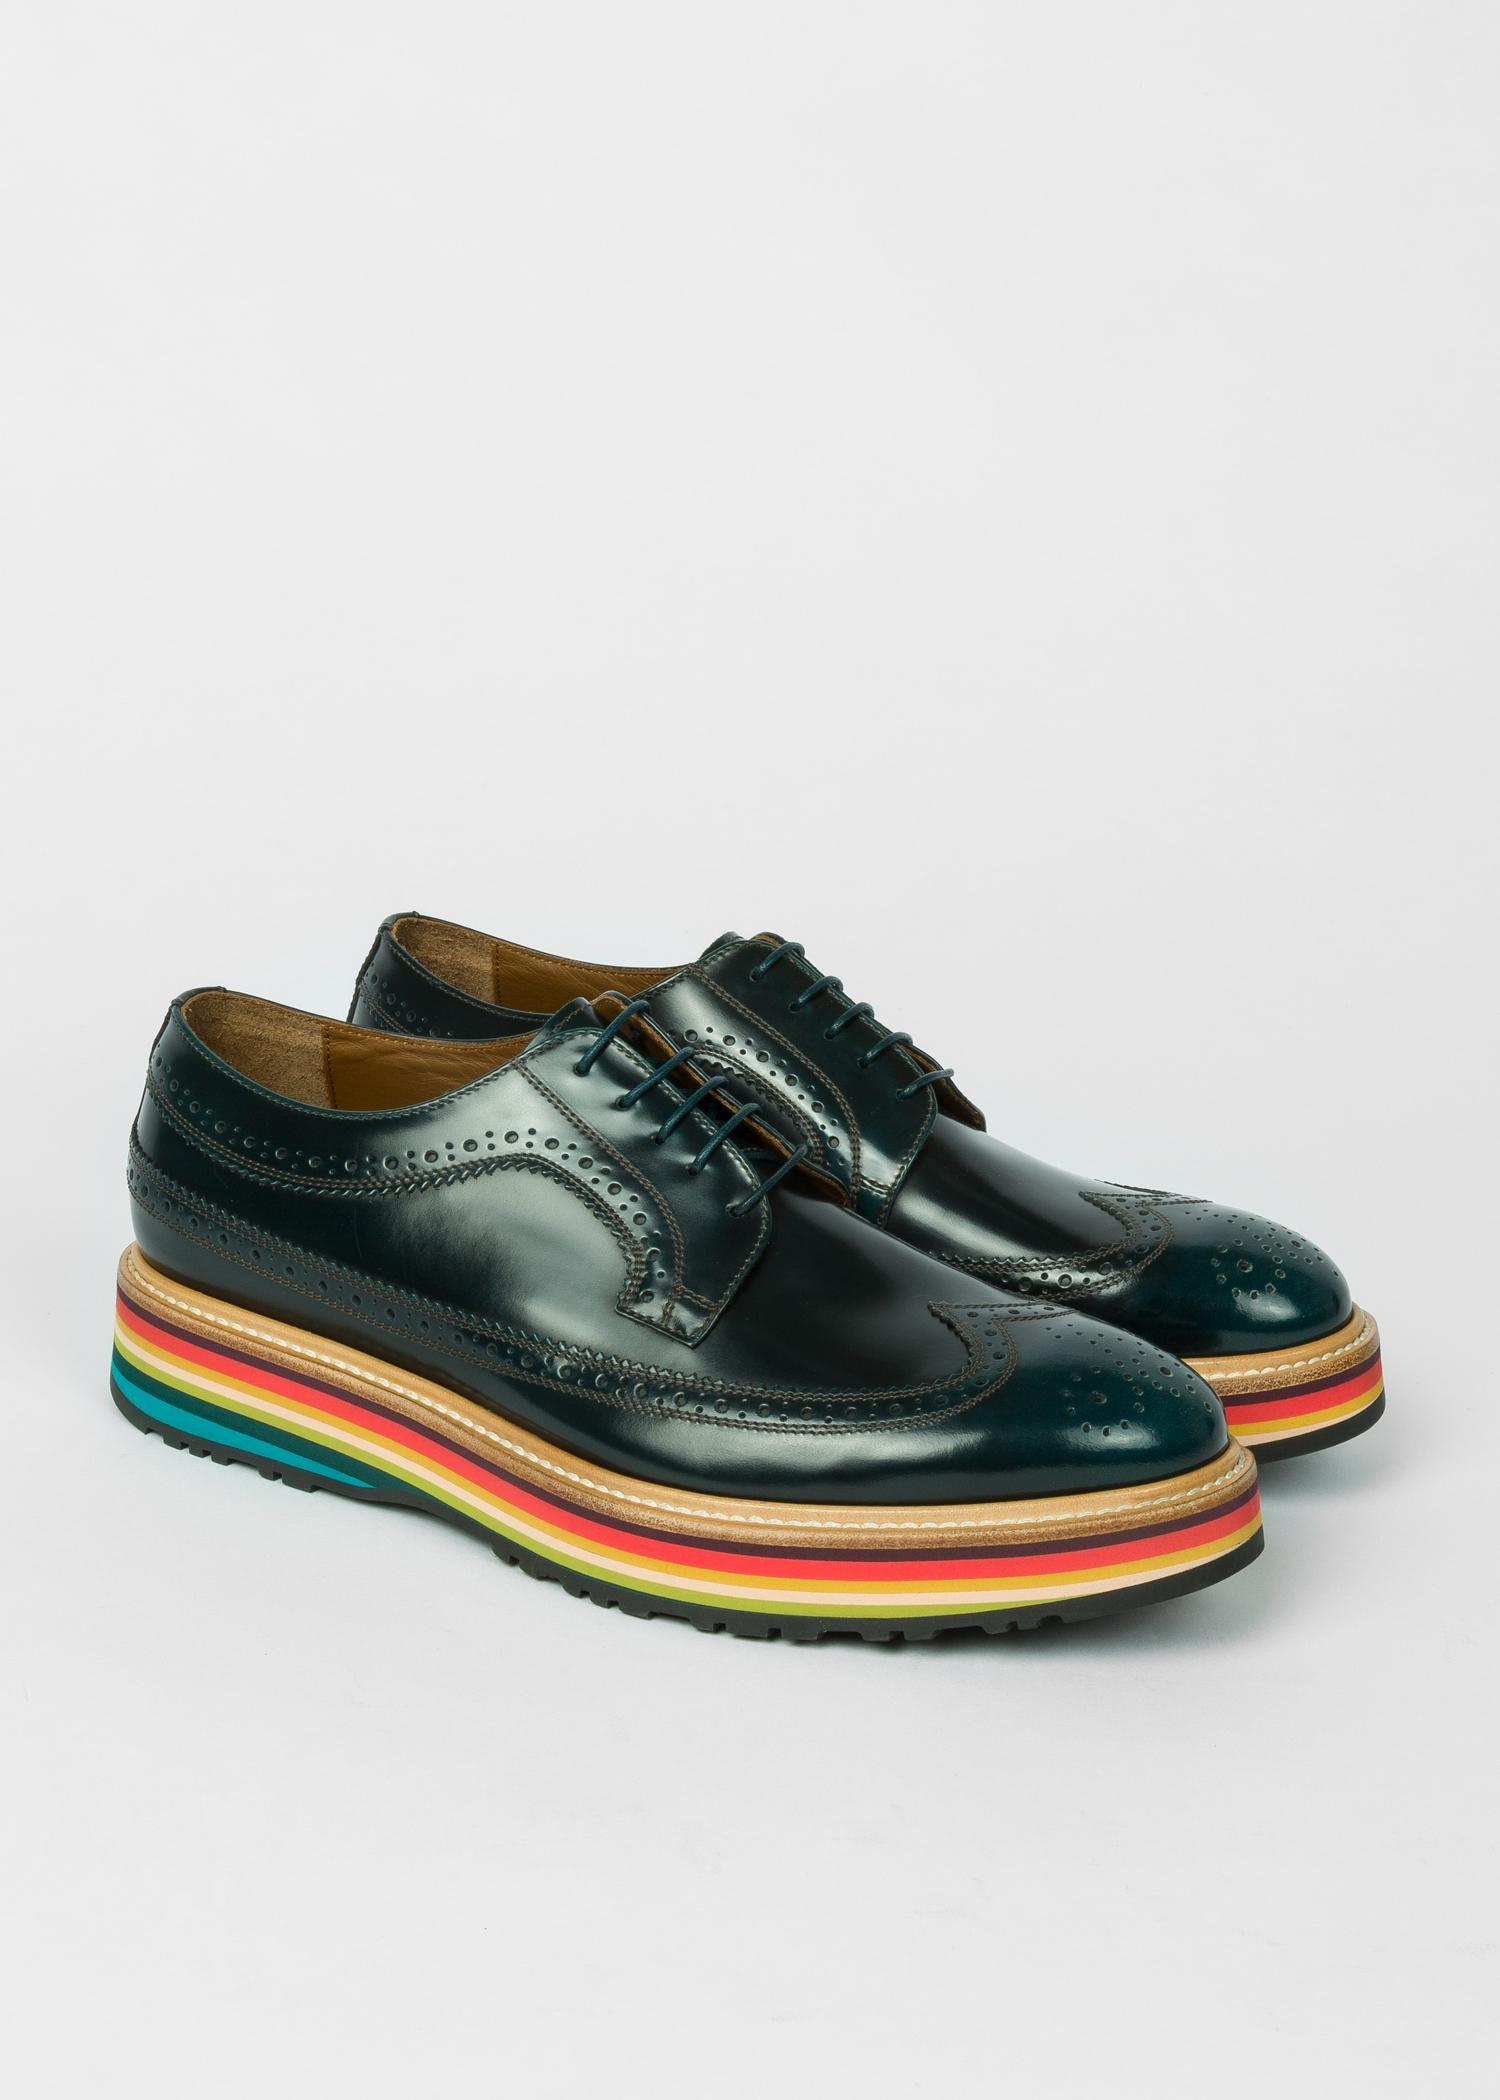 ae22928f50c Paul Smith Dark Green Leather 'Grand' Brogues With Striped Soles in ...